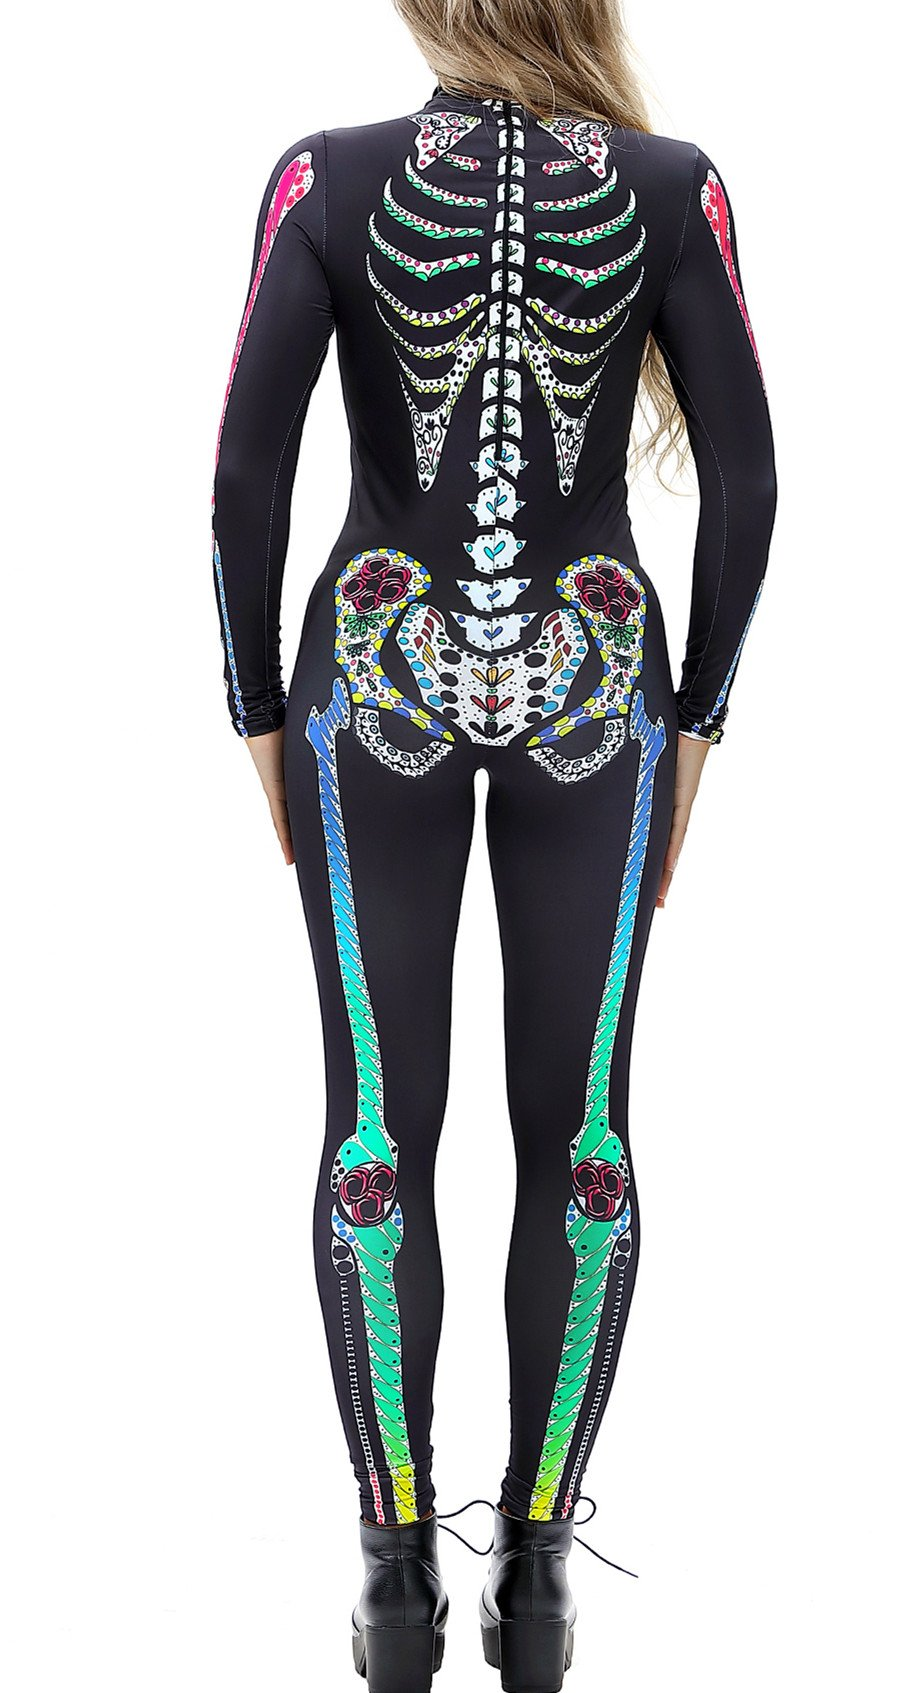 Gludear Women Halloween Costumes Cosplay Skull Print Long Sleeve Jumpsuit Skeleton Catsuit,Colorful Skeleton,L by Gludear (Image #3)